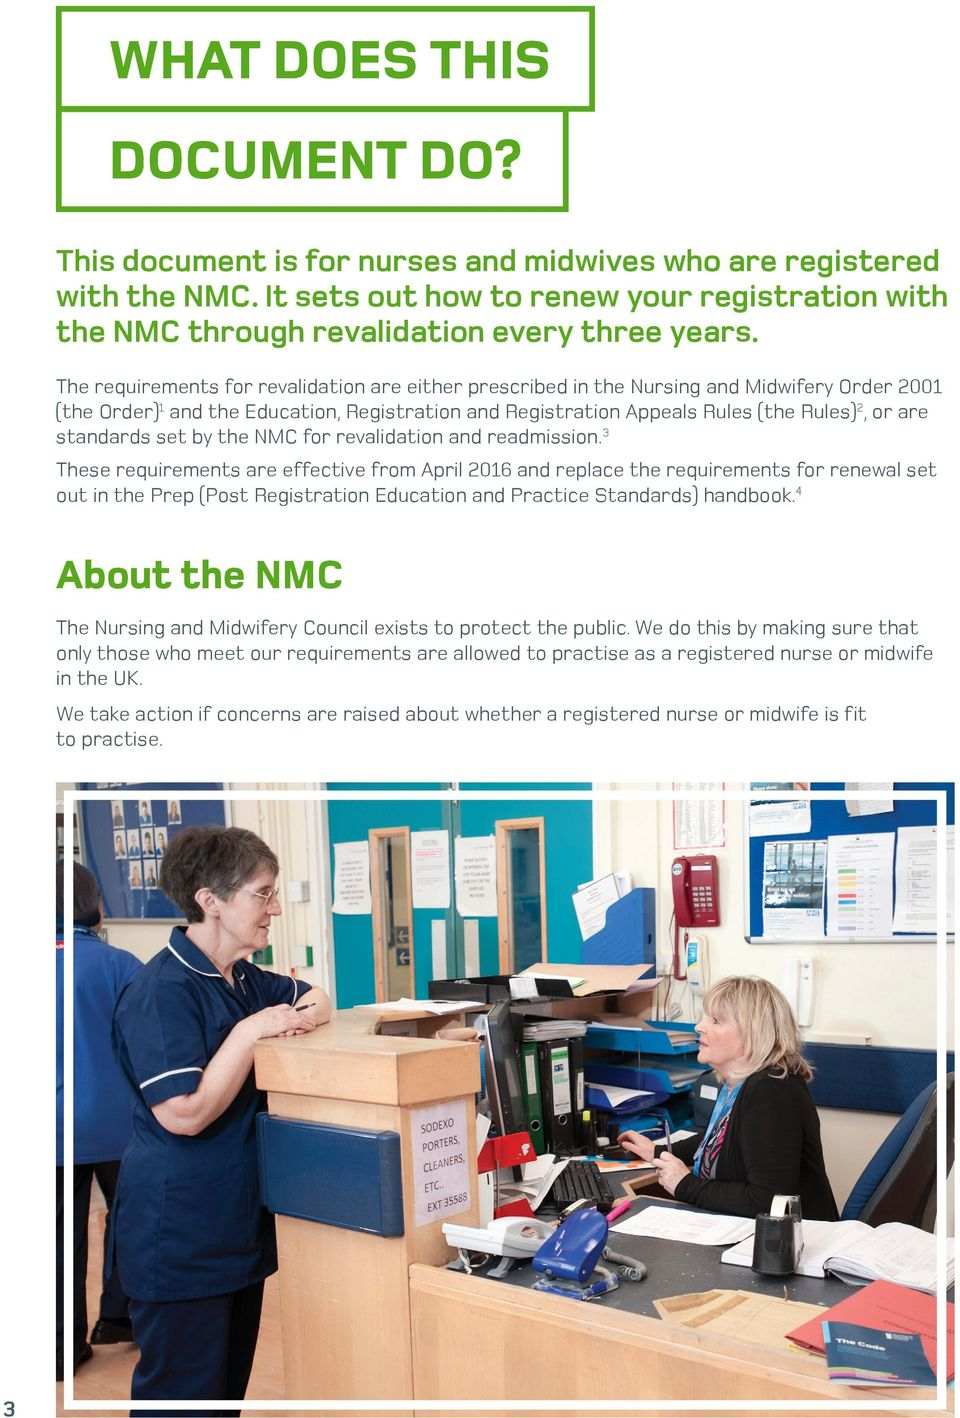 standards set by the NMC for revalidation and readmission.